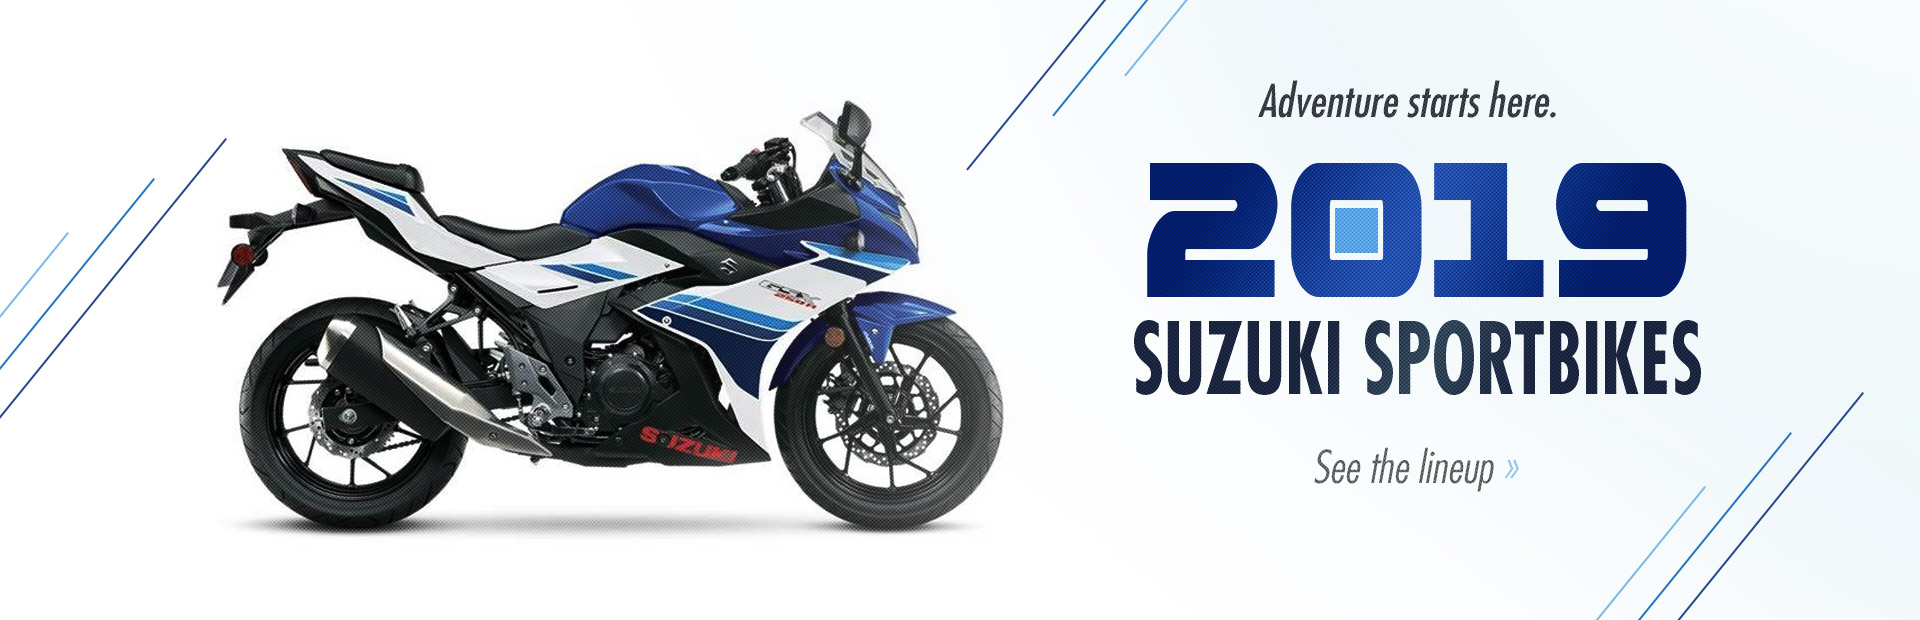 2019 Suzuki Sportbikes: Click here to view the models.